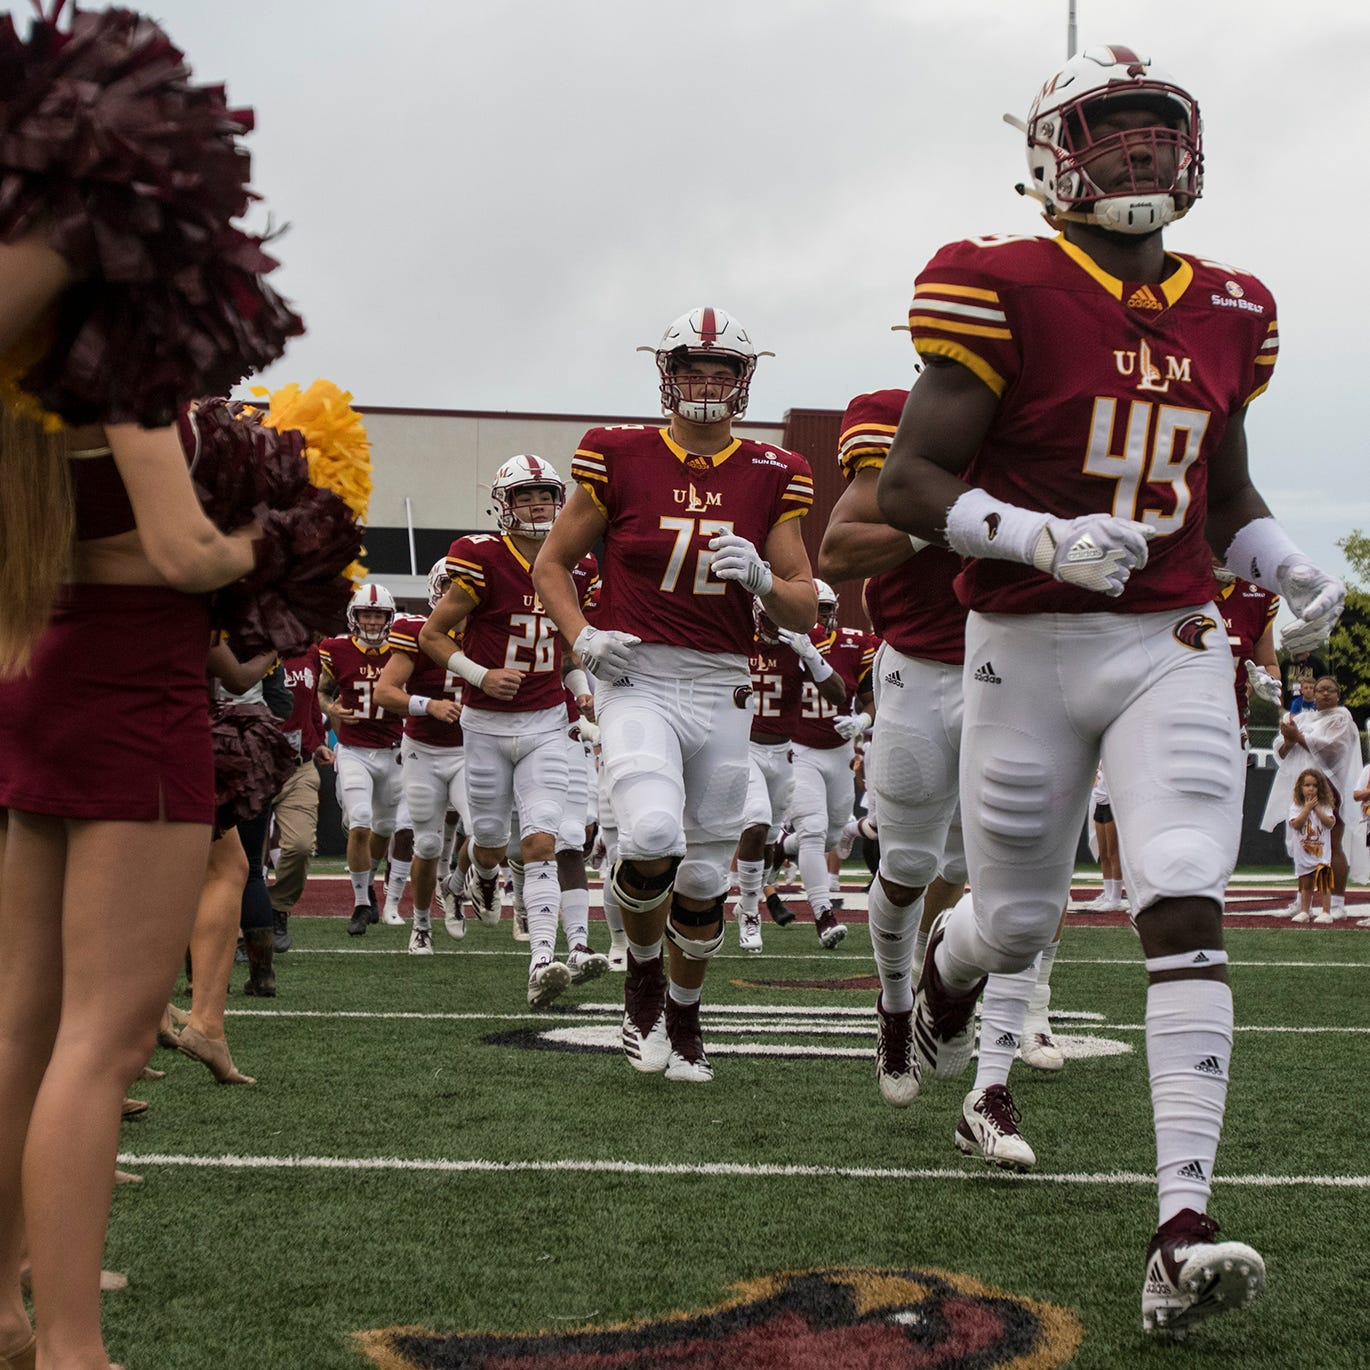 How ULM can snap an 8-game losing streak to Arkansas State